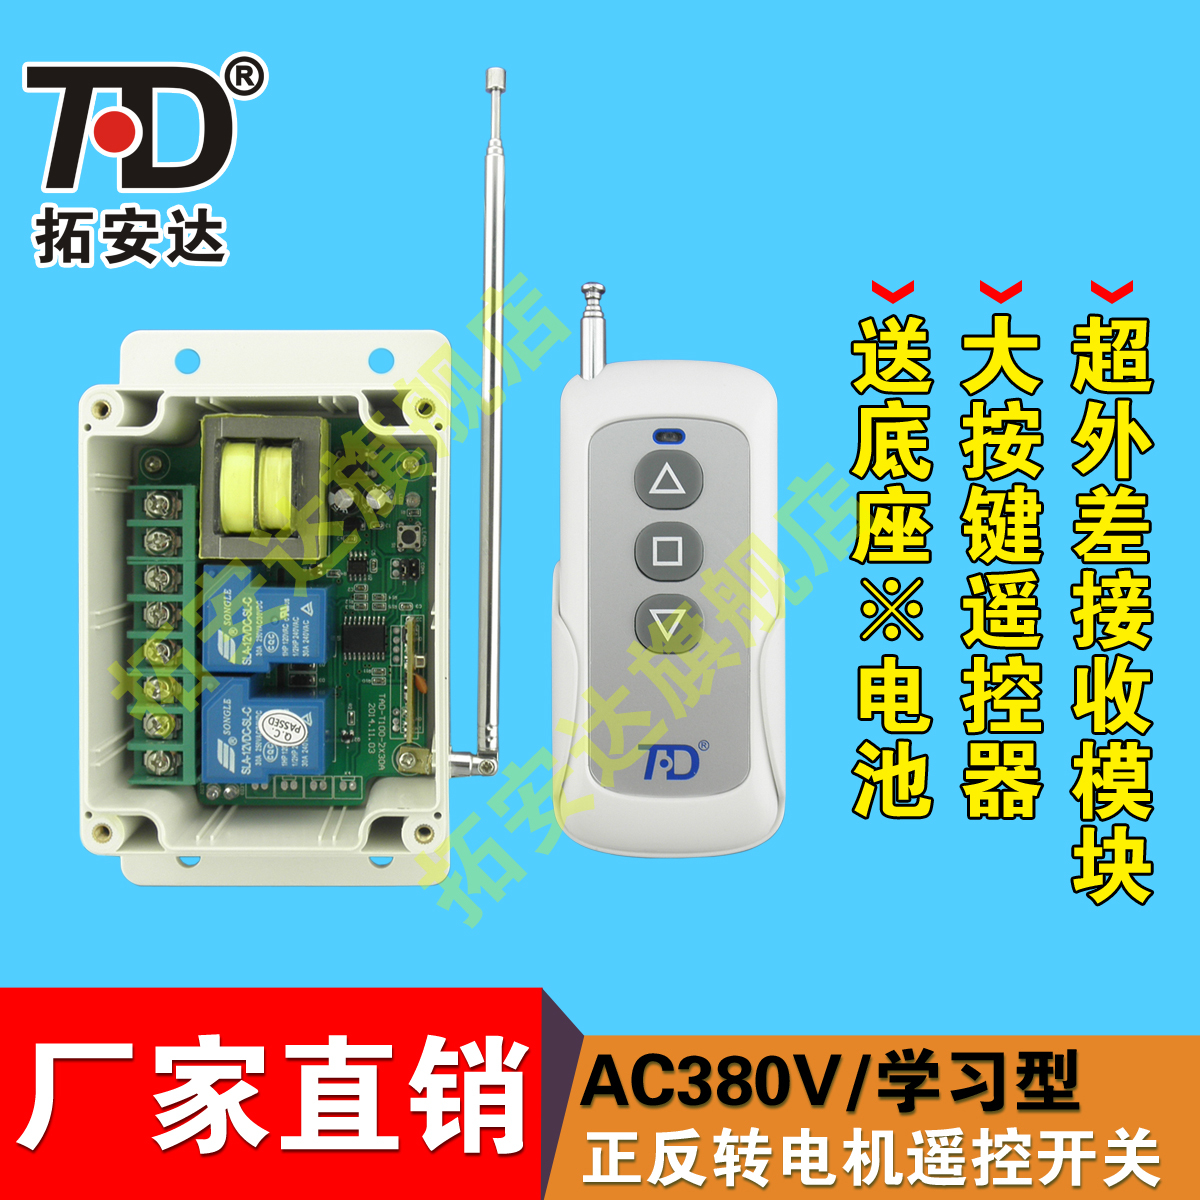 380V Electric Machinery Remote Control Switch Road / Will Shed Road / Volume Sluice / Will Key Remote Control SWITCH380V Electric Machinery Remote Control Switch Road / Will Shed Road / Volume Sluice / Will Key Remote Control SWITCH